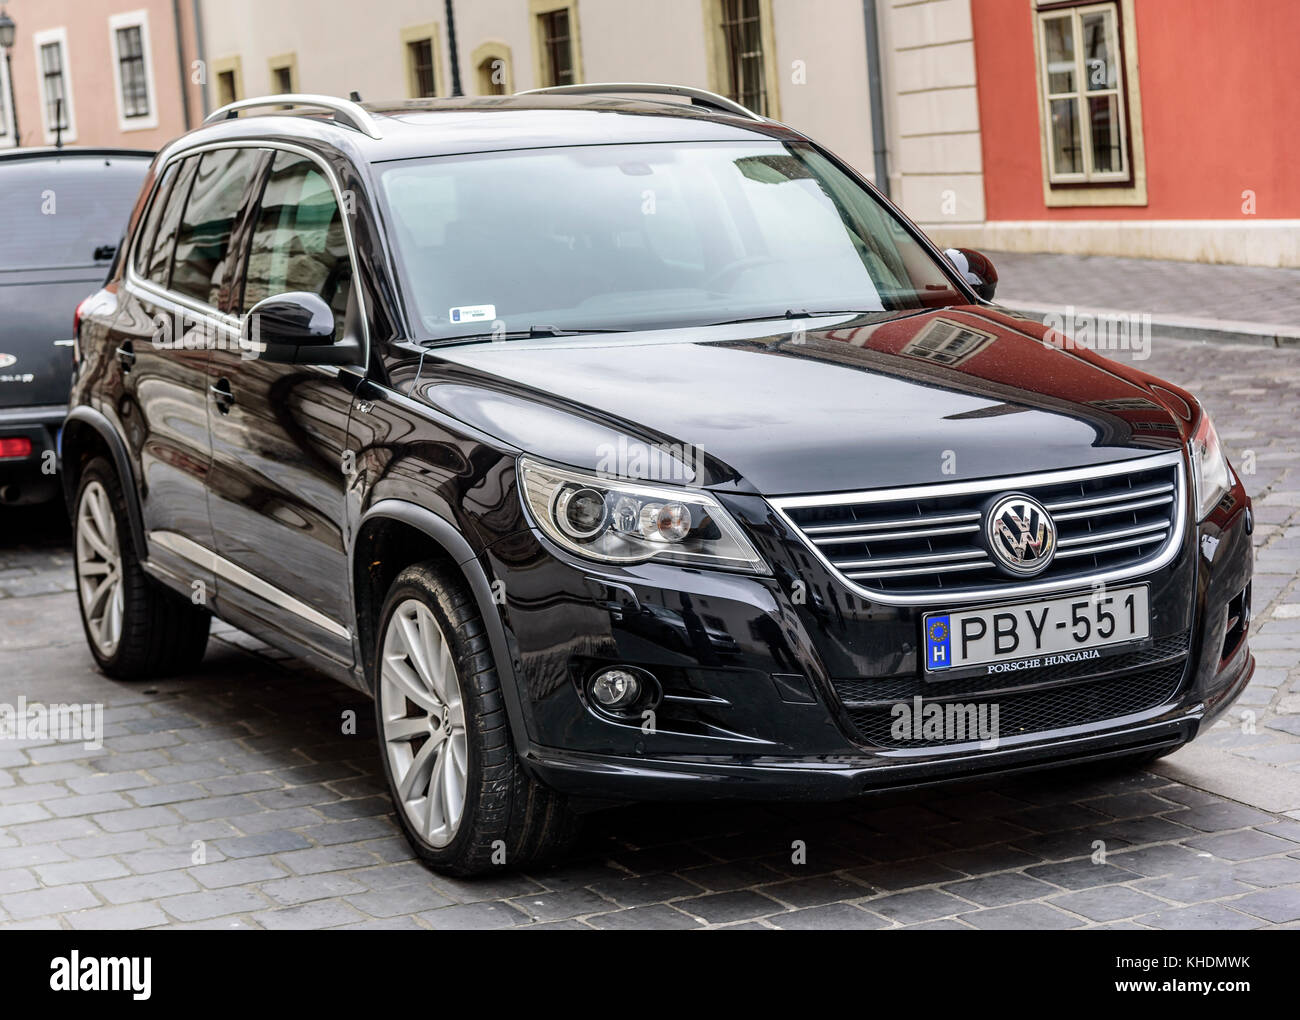 Volkswagen Tiguan Parked on the streets of Budapest. - Stock Image